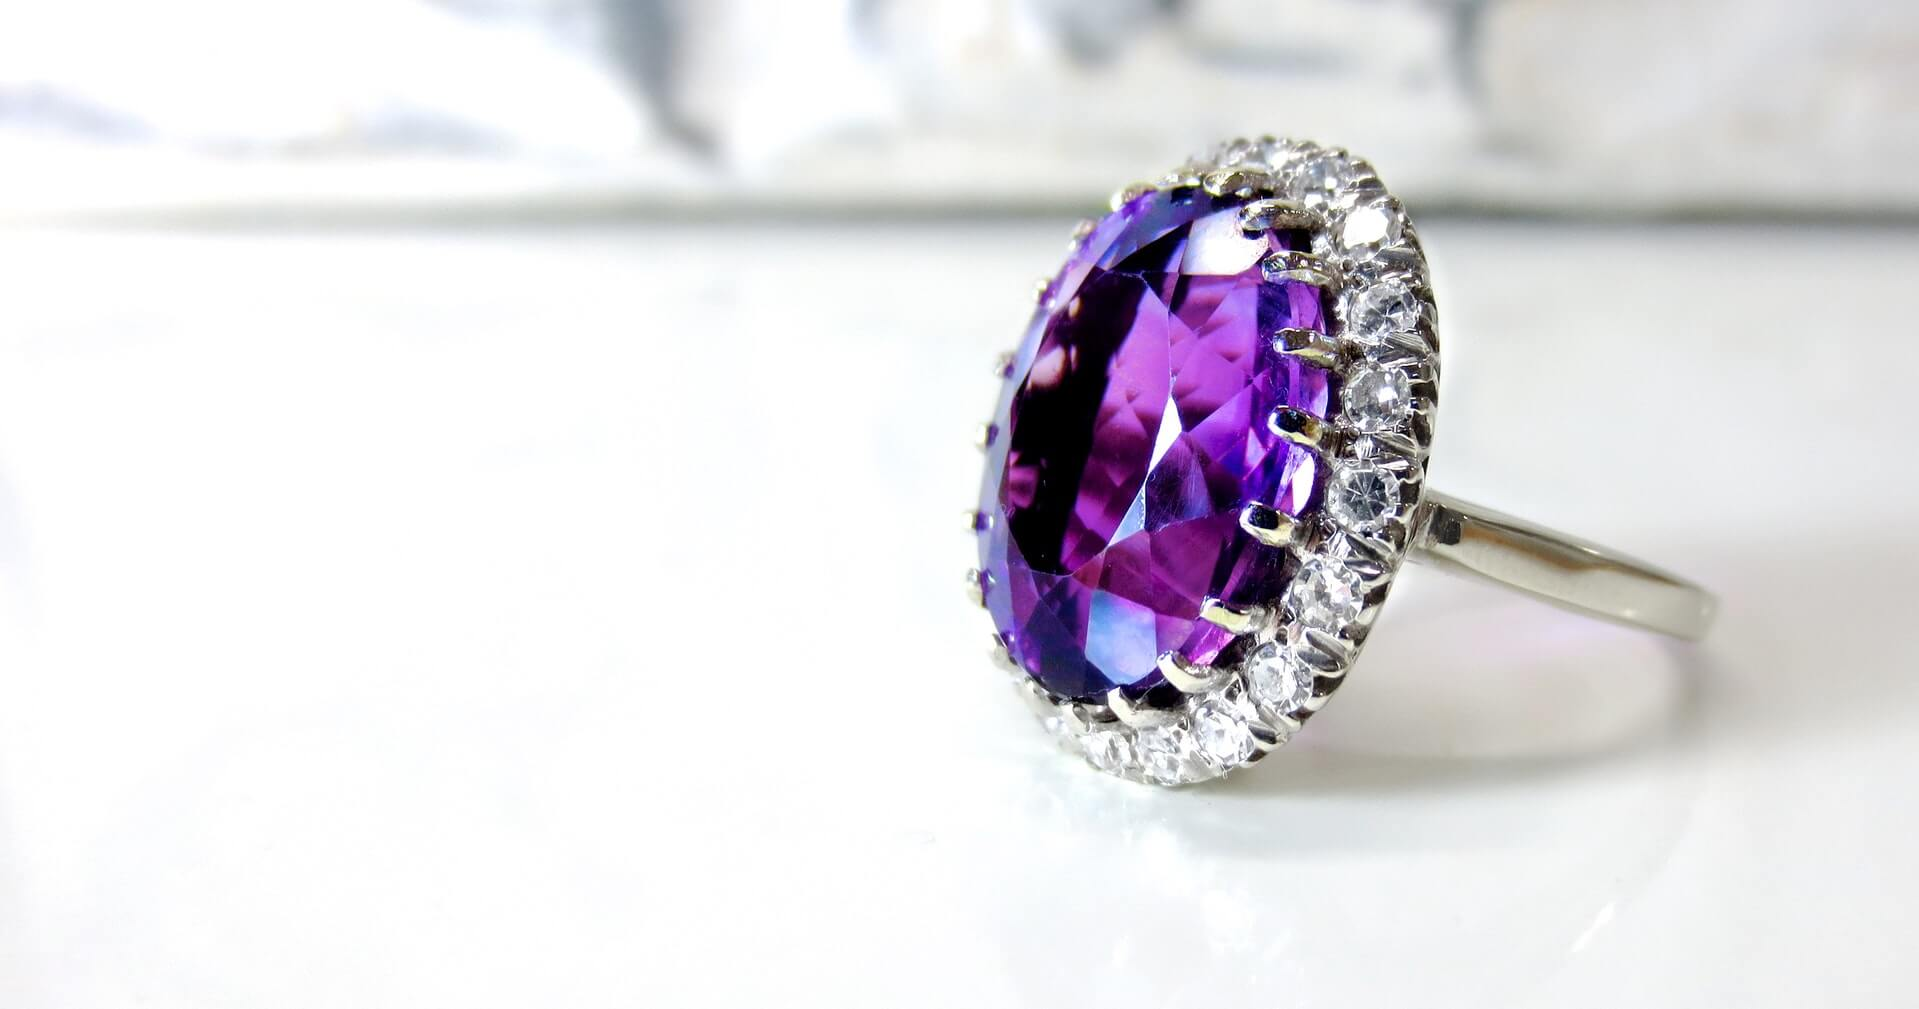 accessory amethyst birthstone